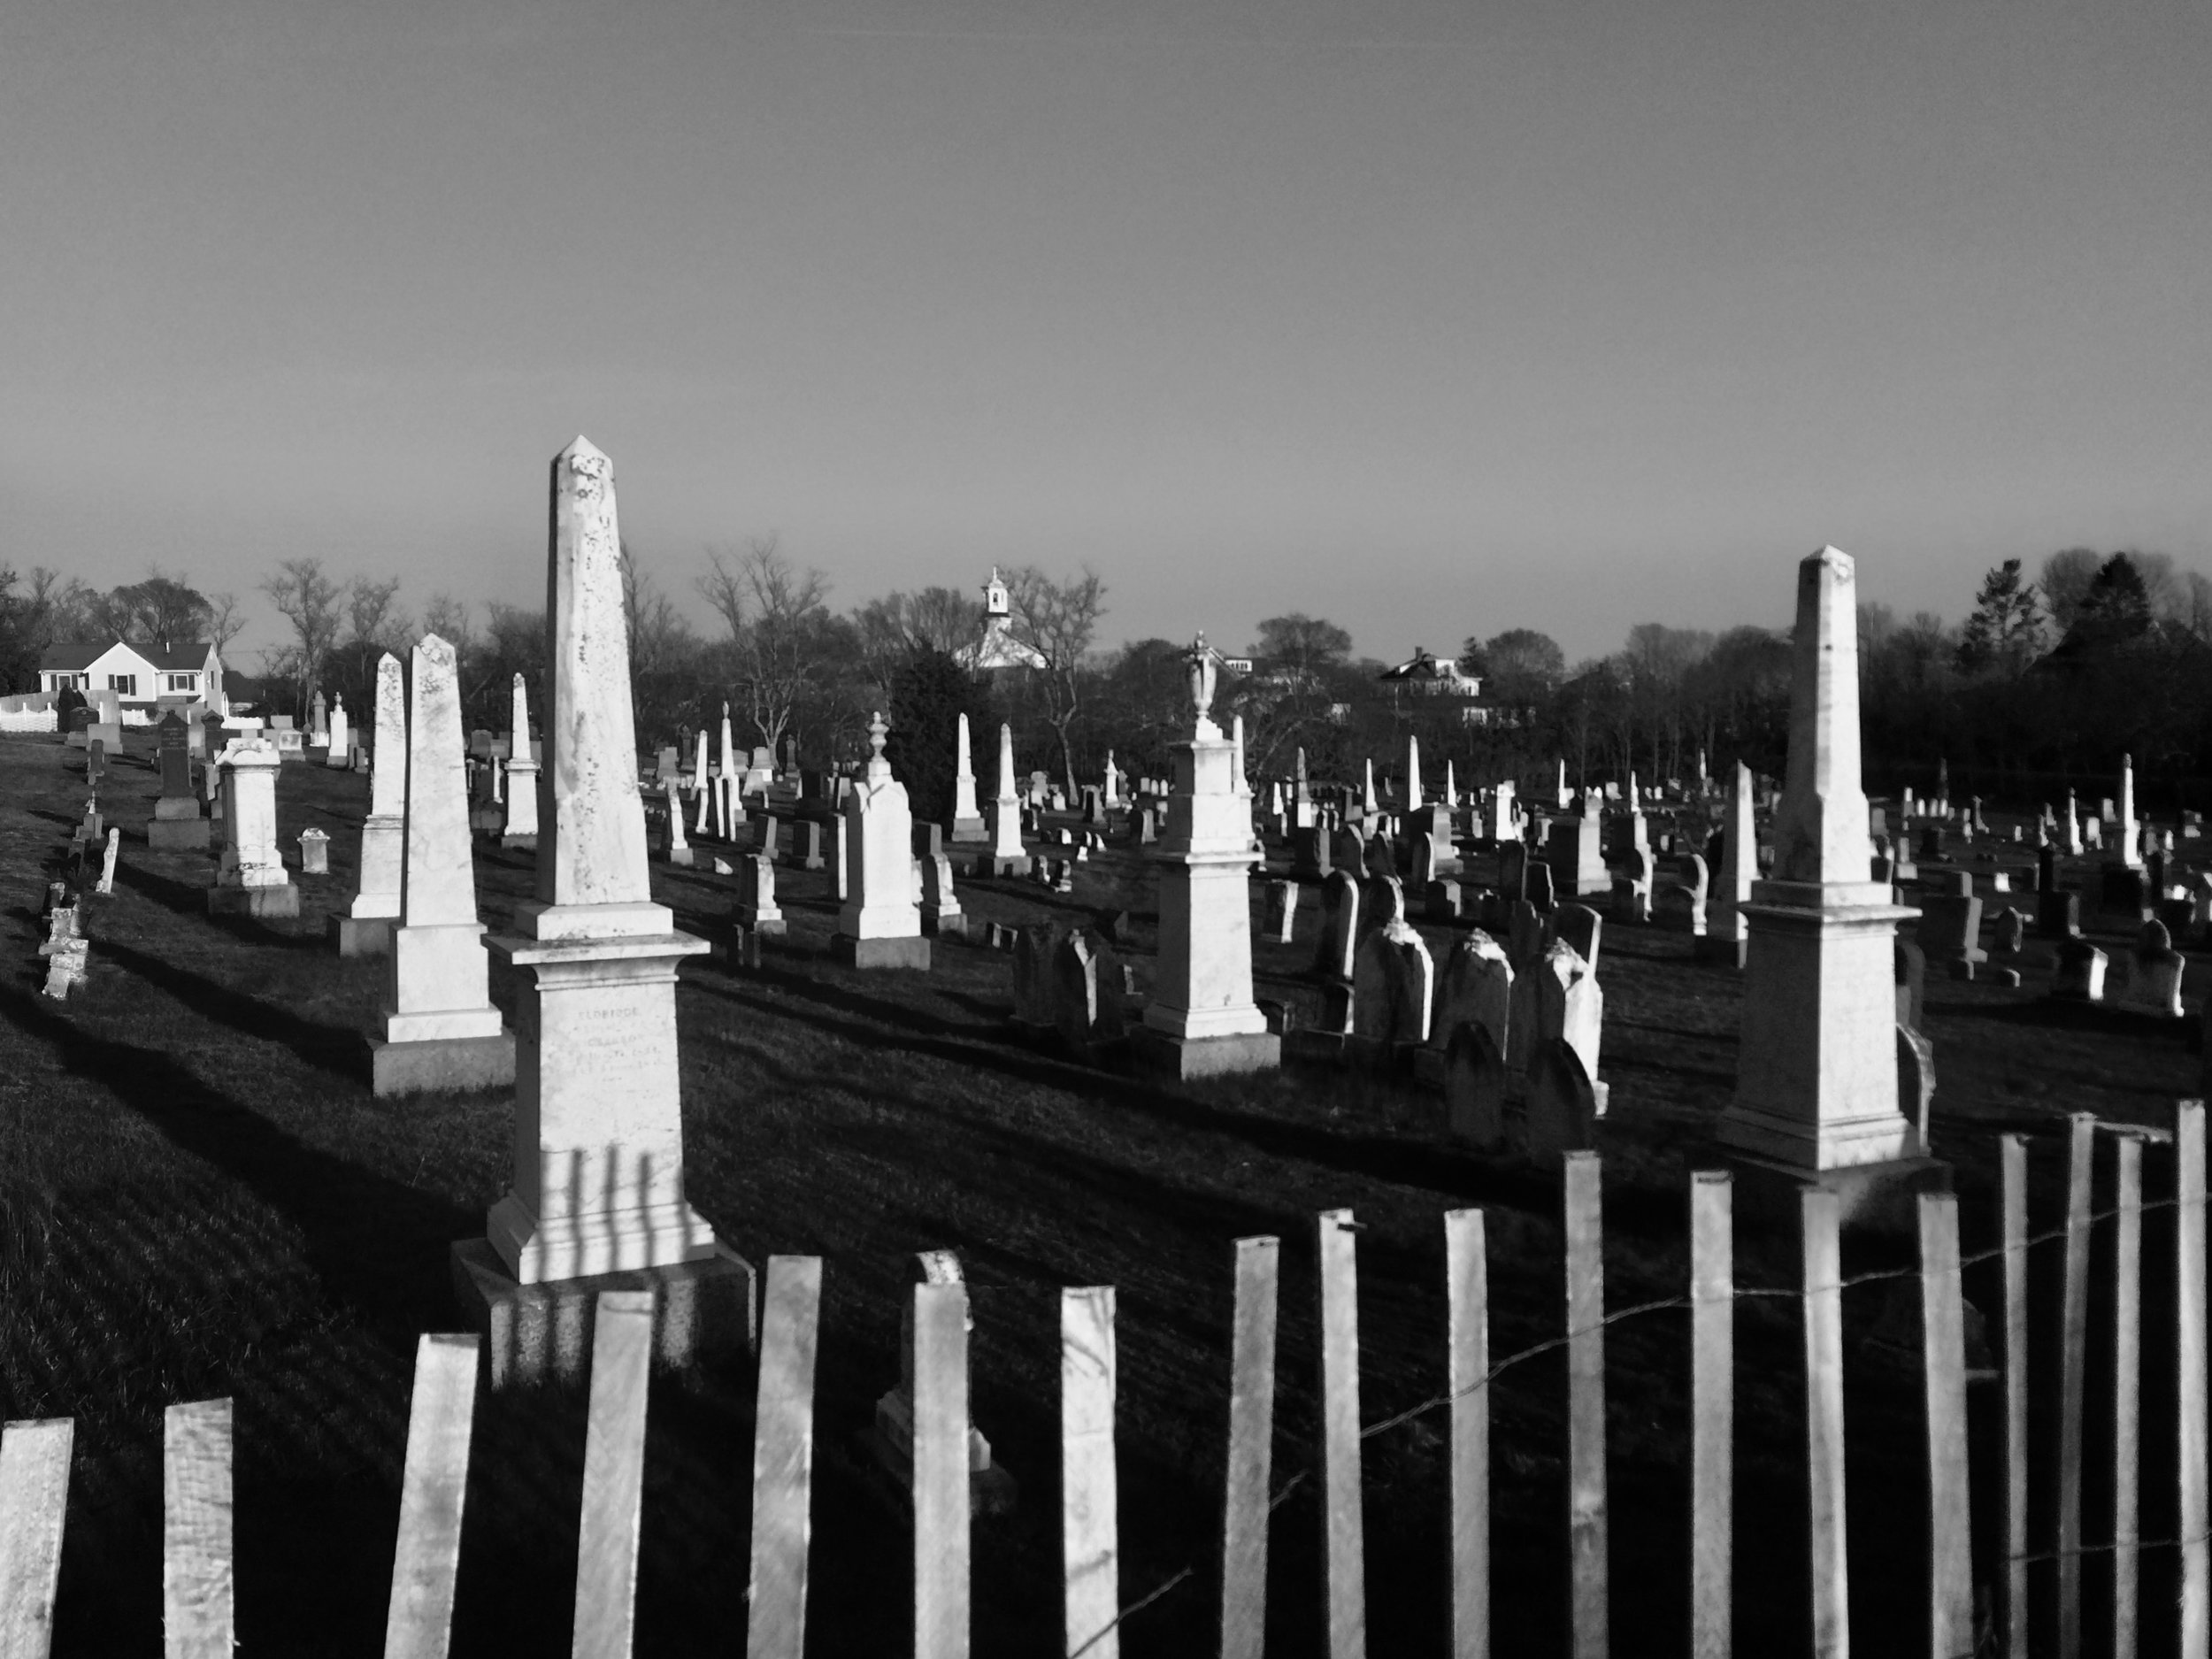 Provincetown's cemeteries contain gravestones dating back to the early 1700s, but we'll see burial sites centuries older…